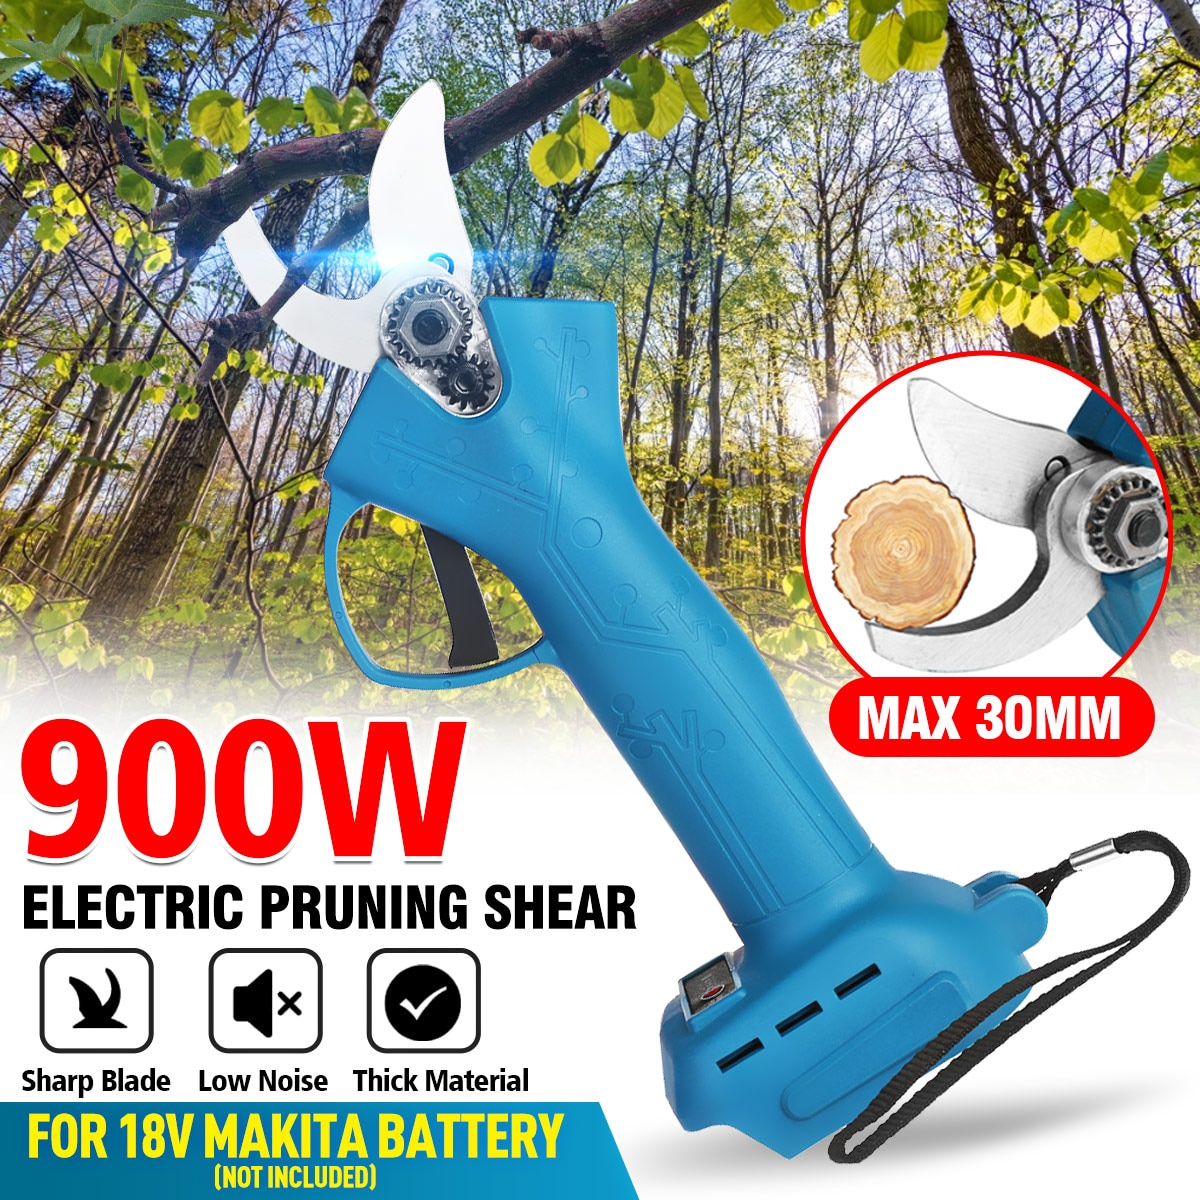 18V 900W Electric Pruner Pruning Shear with box 30mm Efficient Fruit Tree Bonsai Branches Cutter Landscaping for Makita Battery